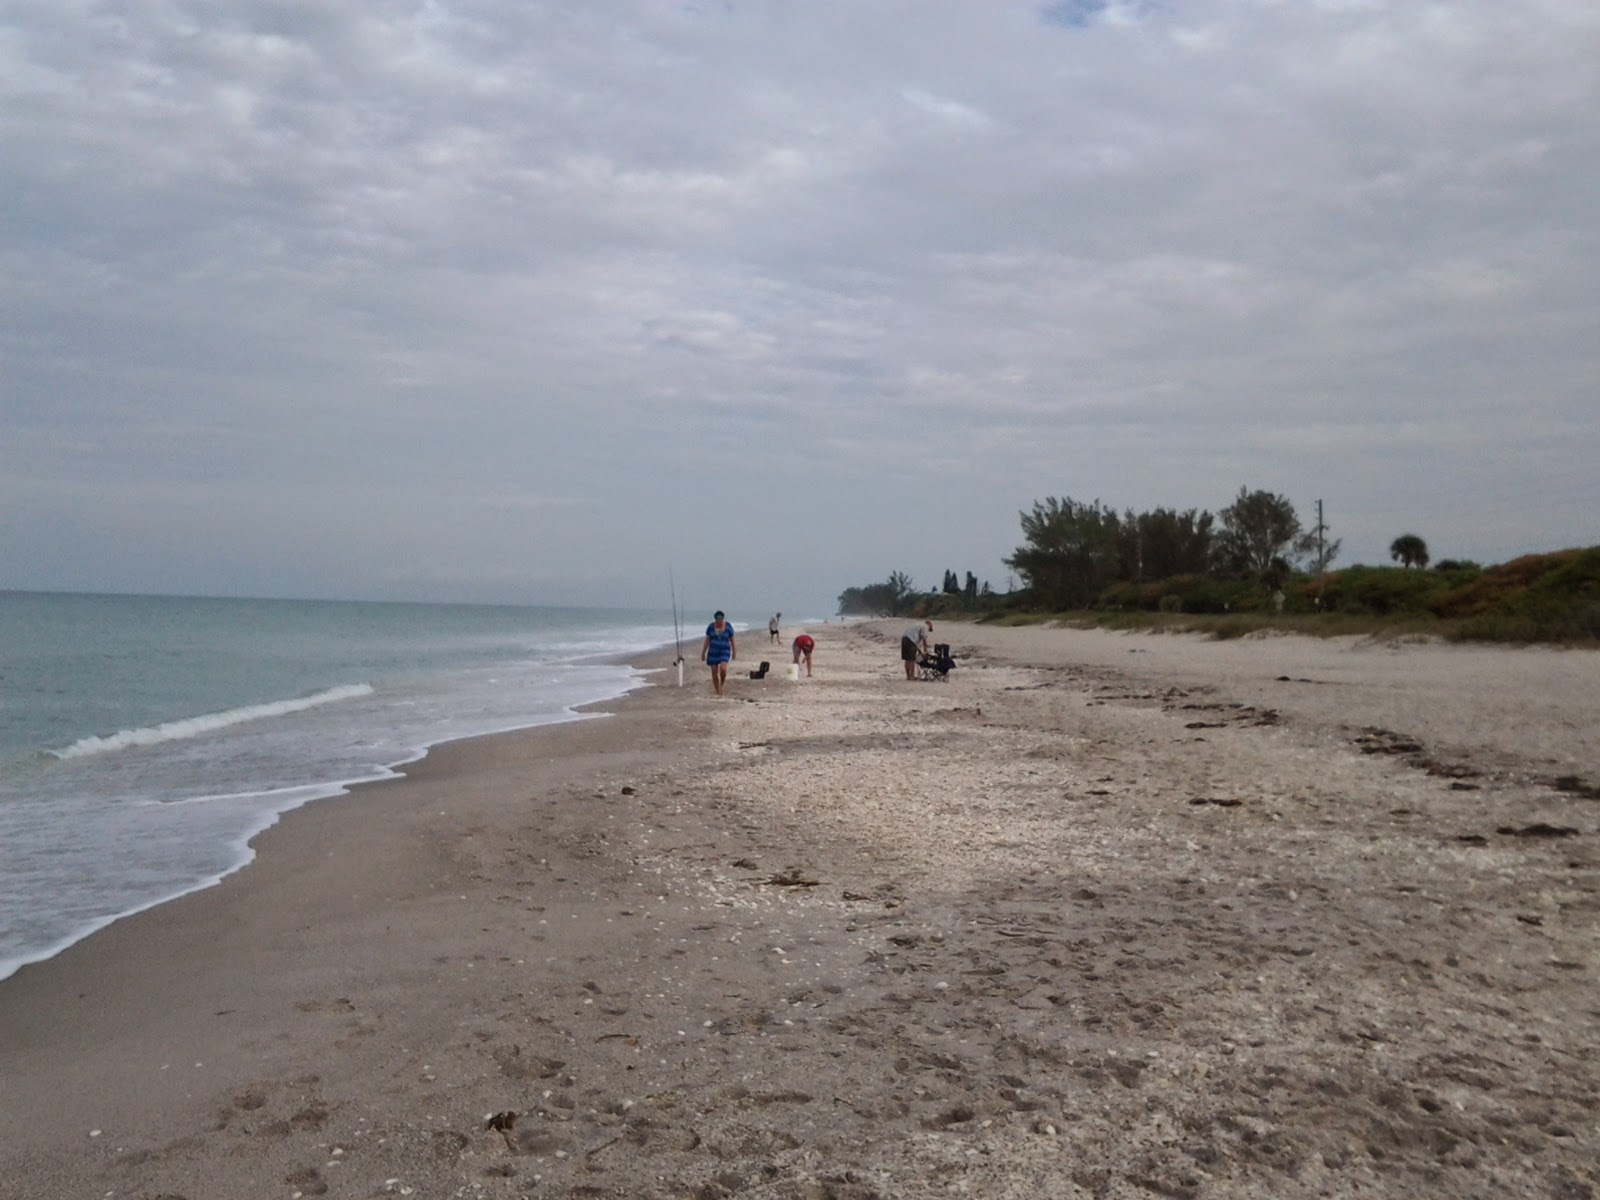 Manasota Key beach facing north